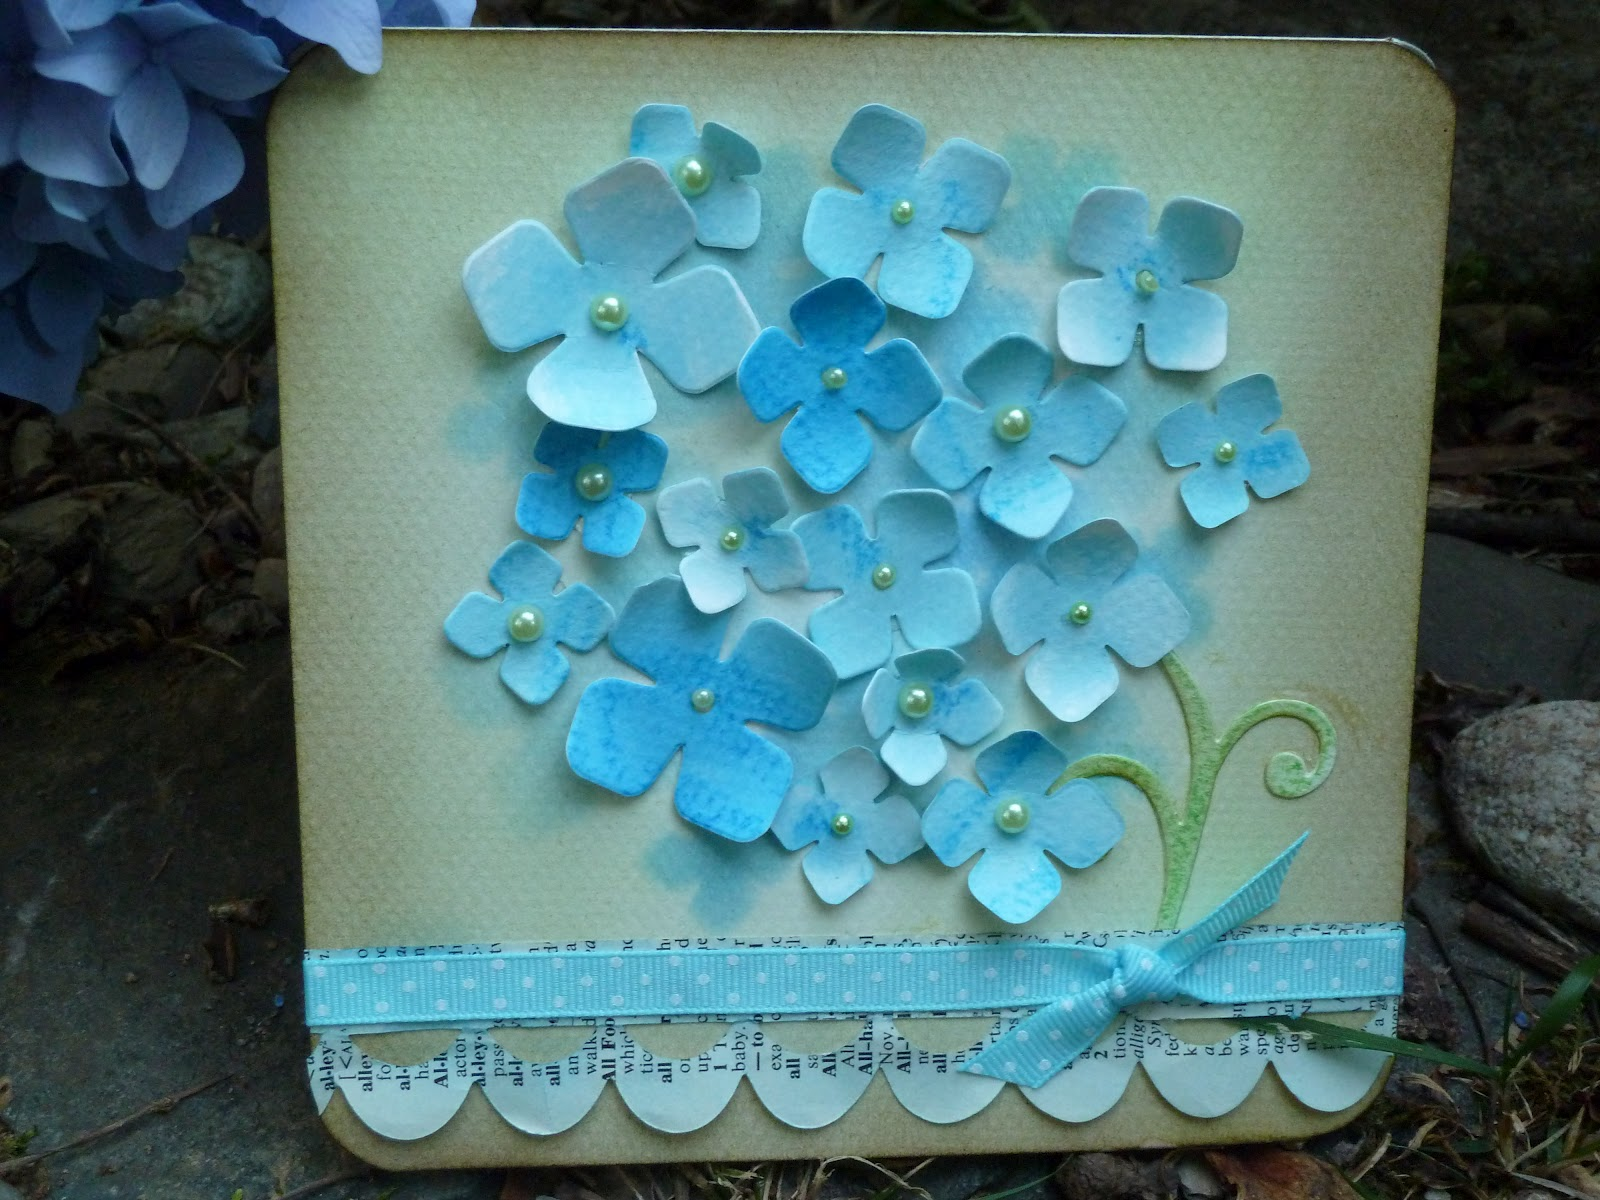 10 Inspirerende Hallen : Sizzix die cutting inspiration and tips: 3d hydrangea card